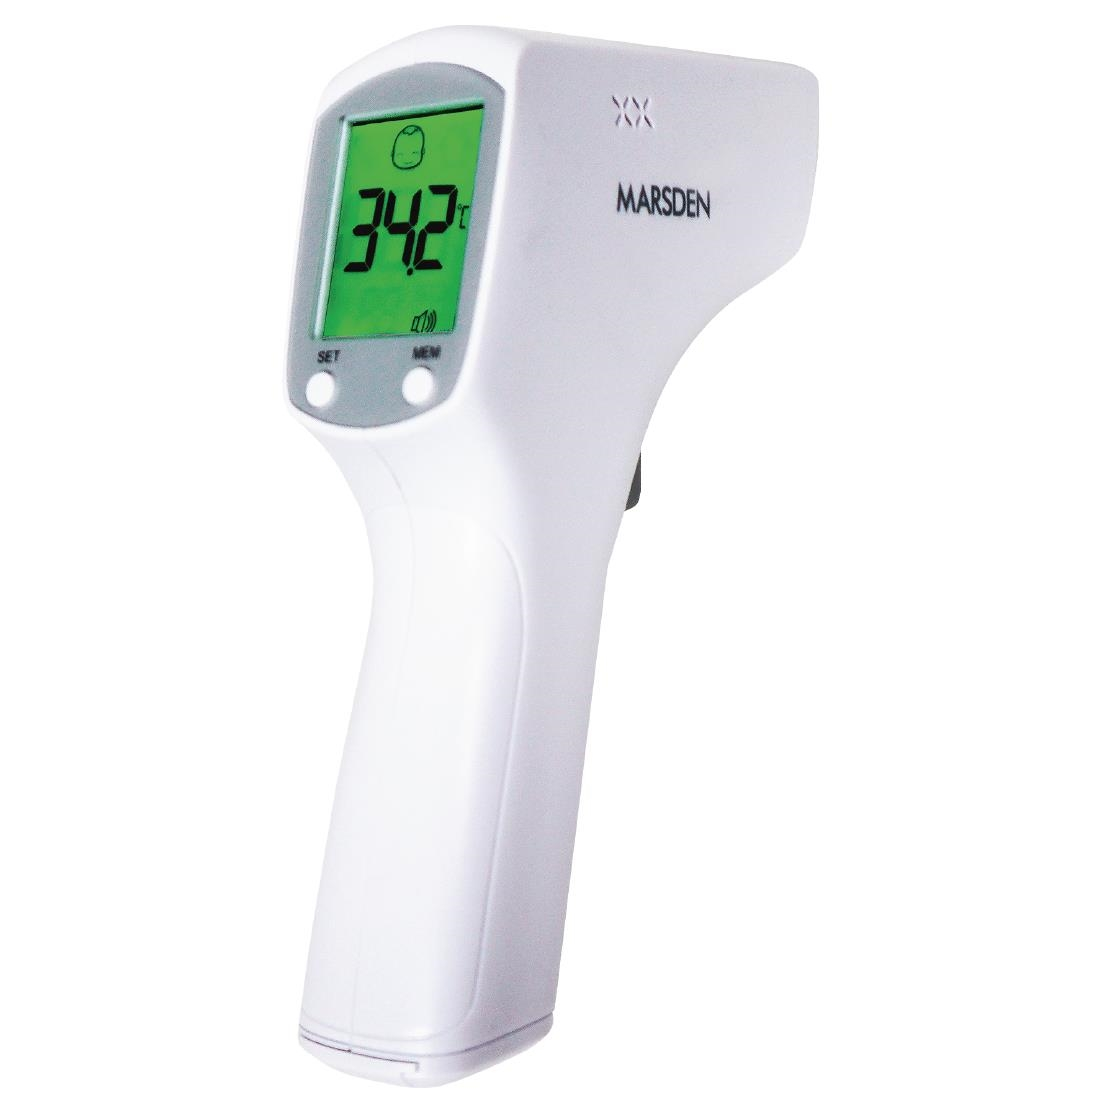 Image of Marsden Non-Contact Infrared Forehead Thermometer FT3010